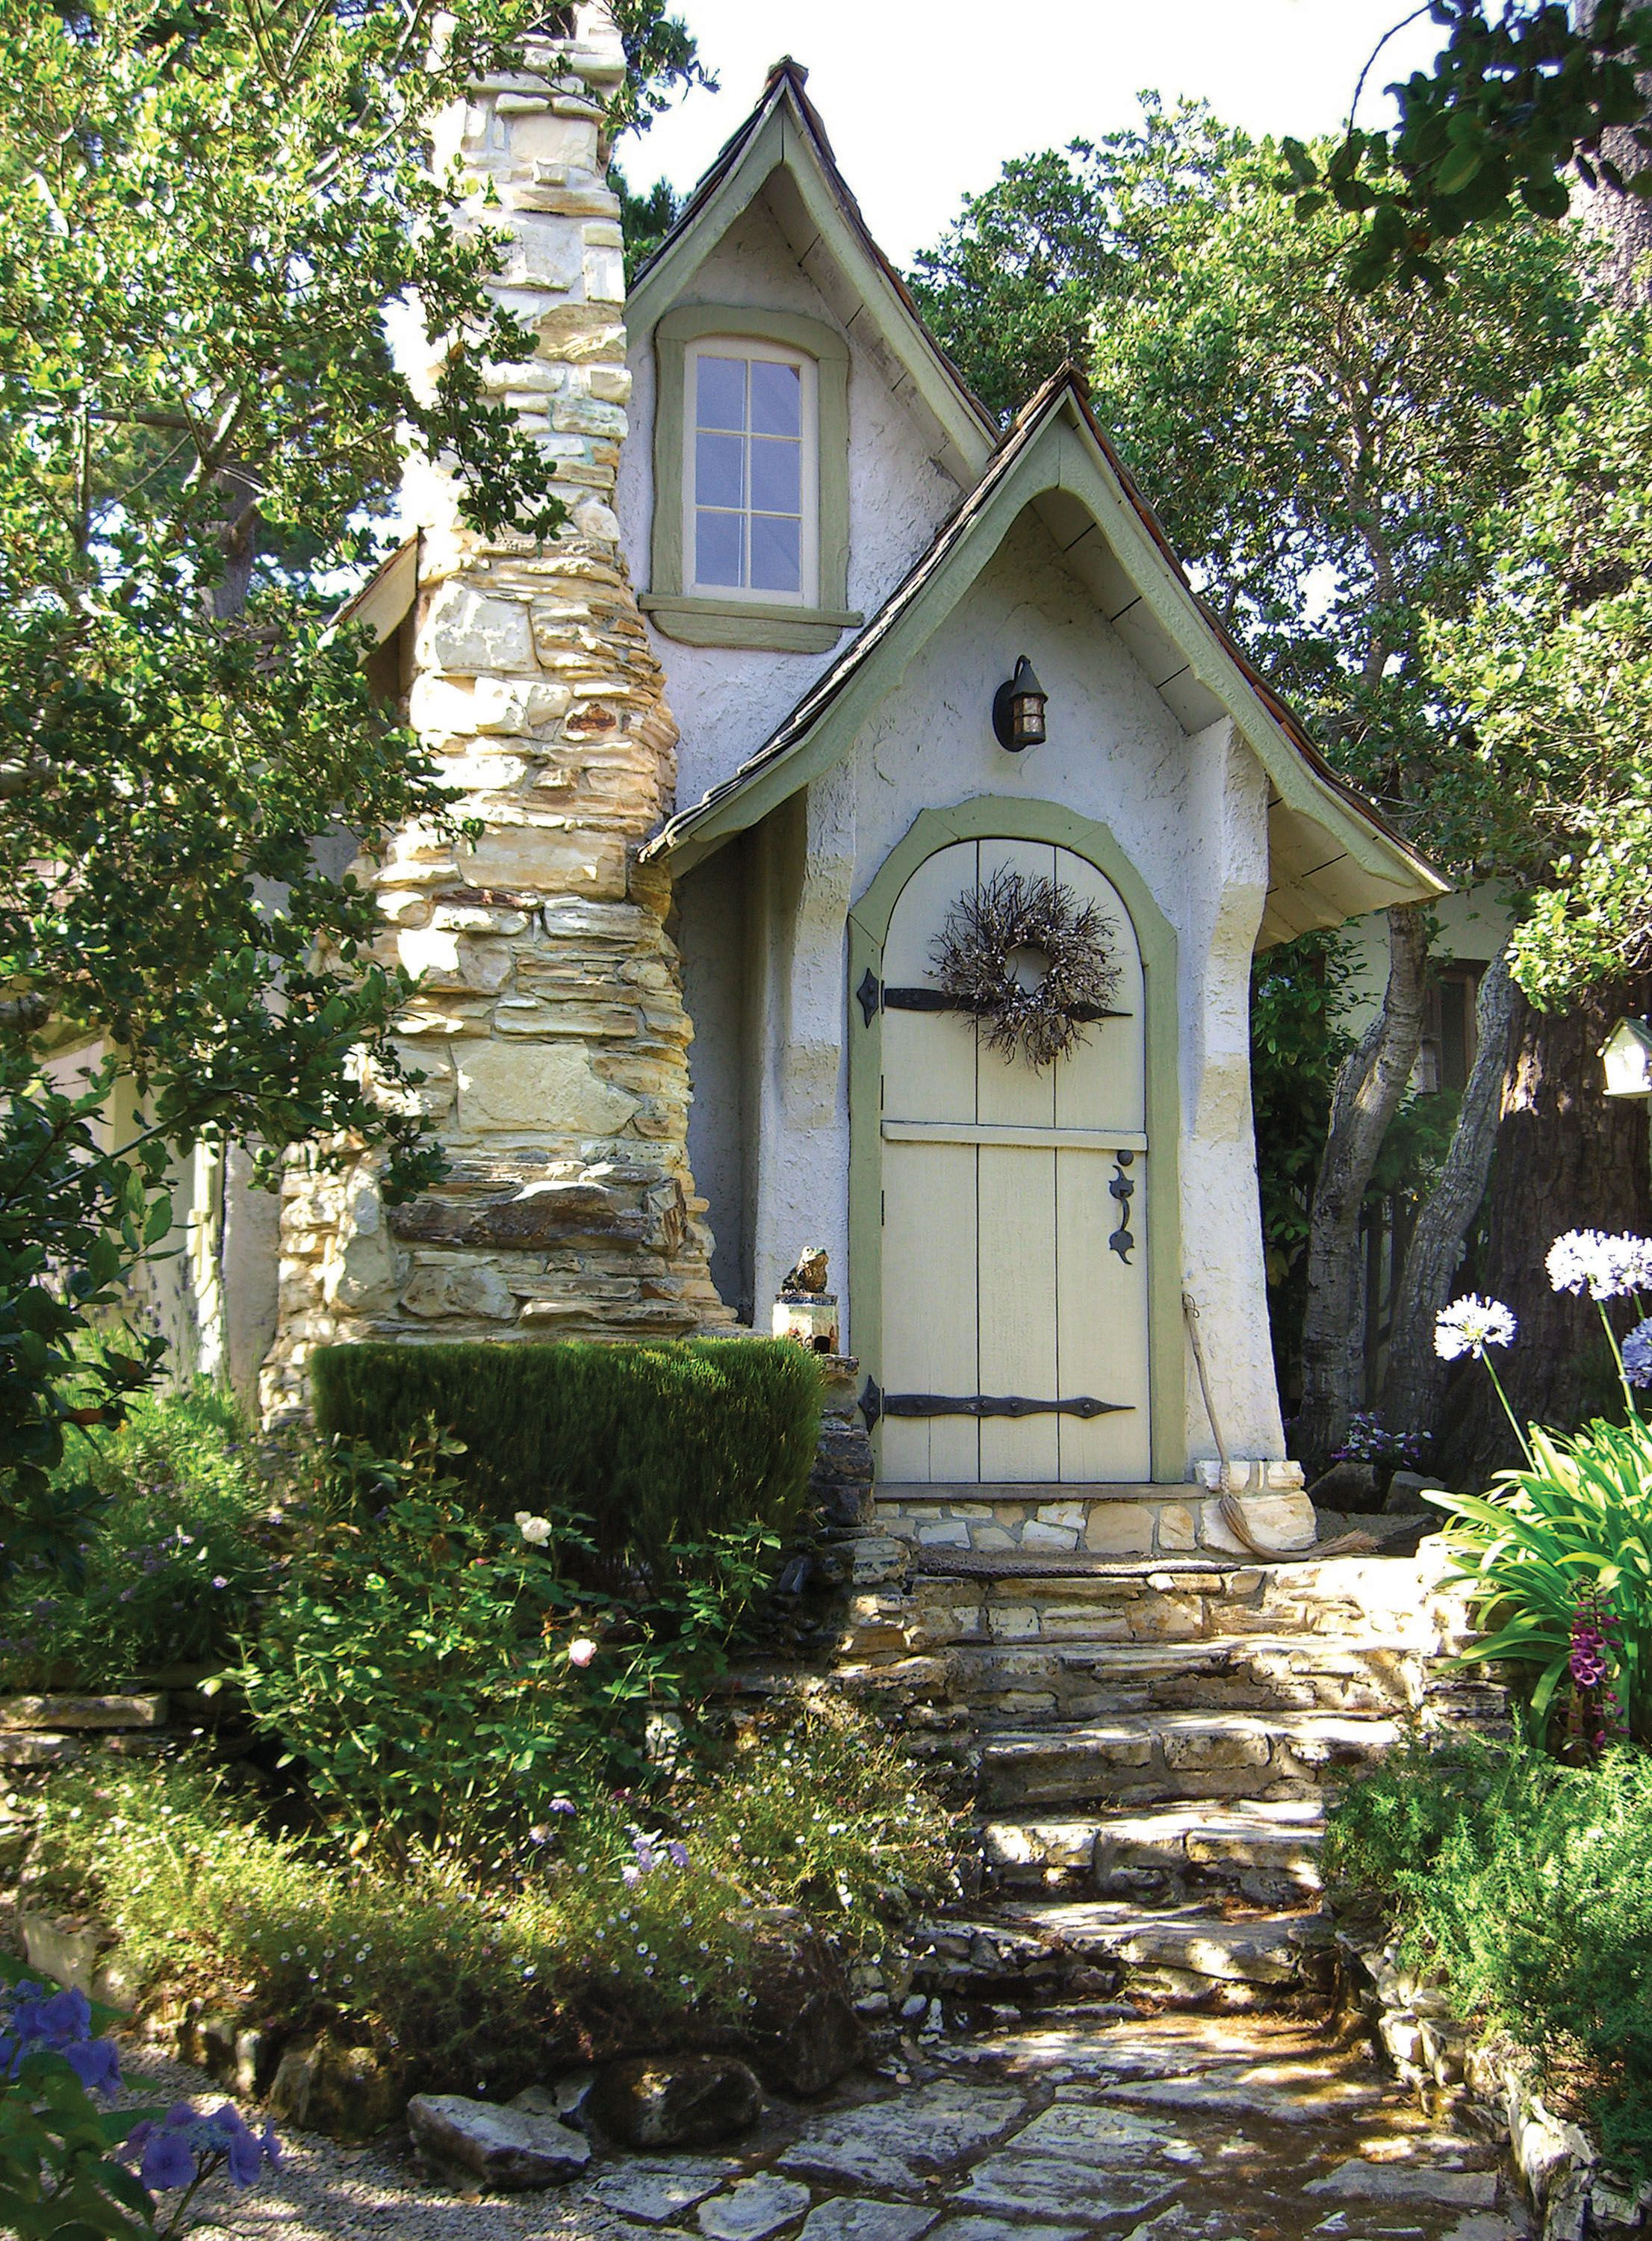 a door to the imagination houses pinterest architecture home design fairytale house fairy tale romantic fantasy